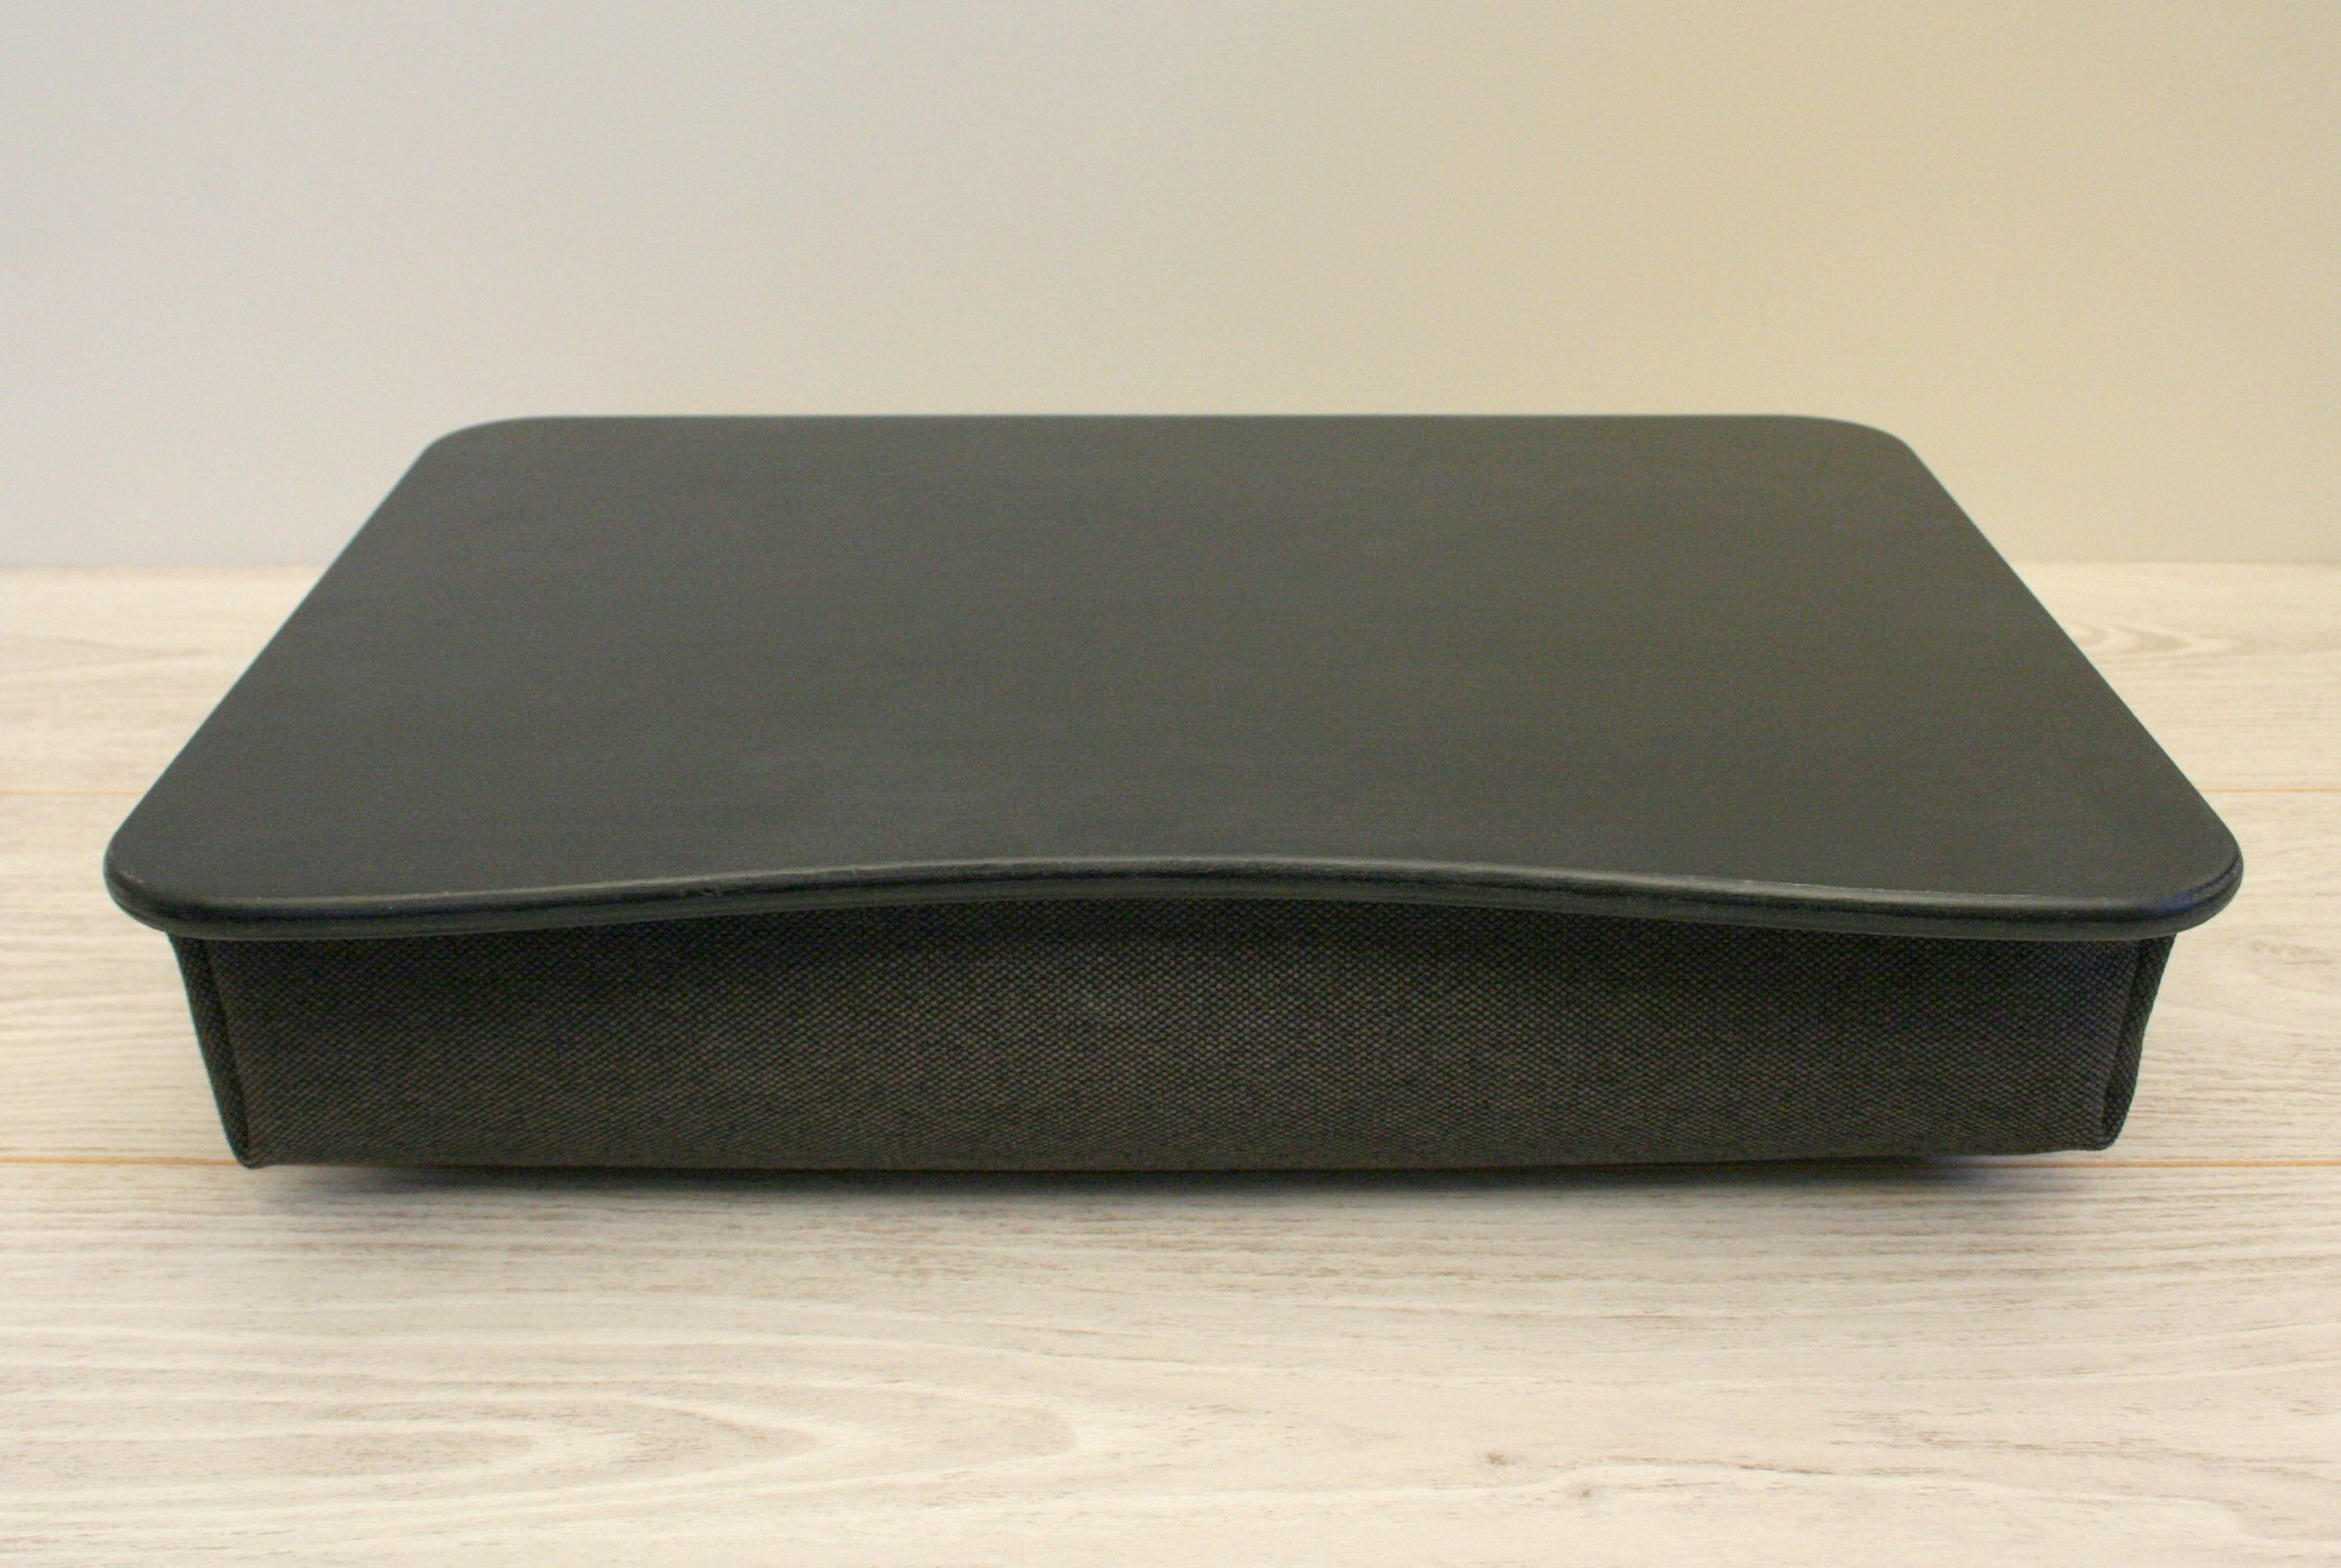 Wood Laptop Stand / Breakfast Tray / Wooden Laptop Bed Tray / Serving Tray / iPad Table / Pillow Tray ''Basic Black''